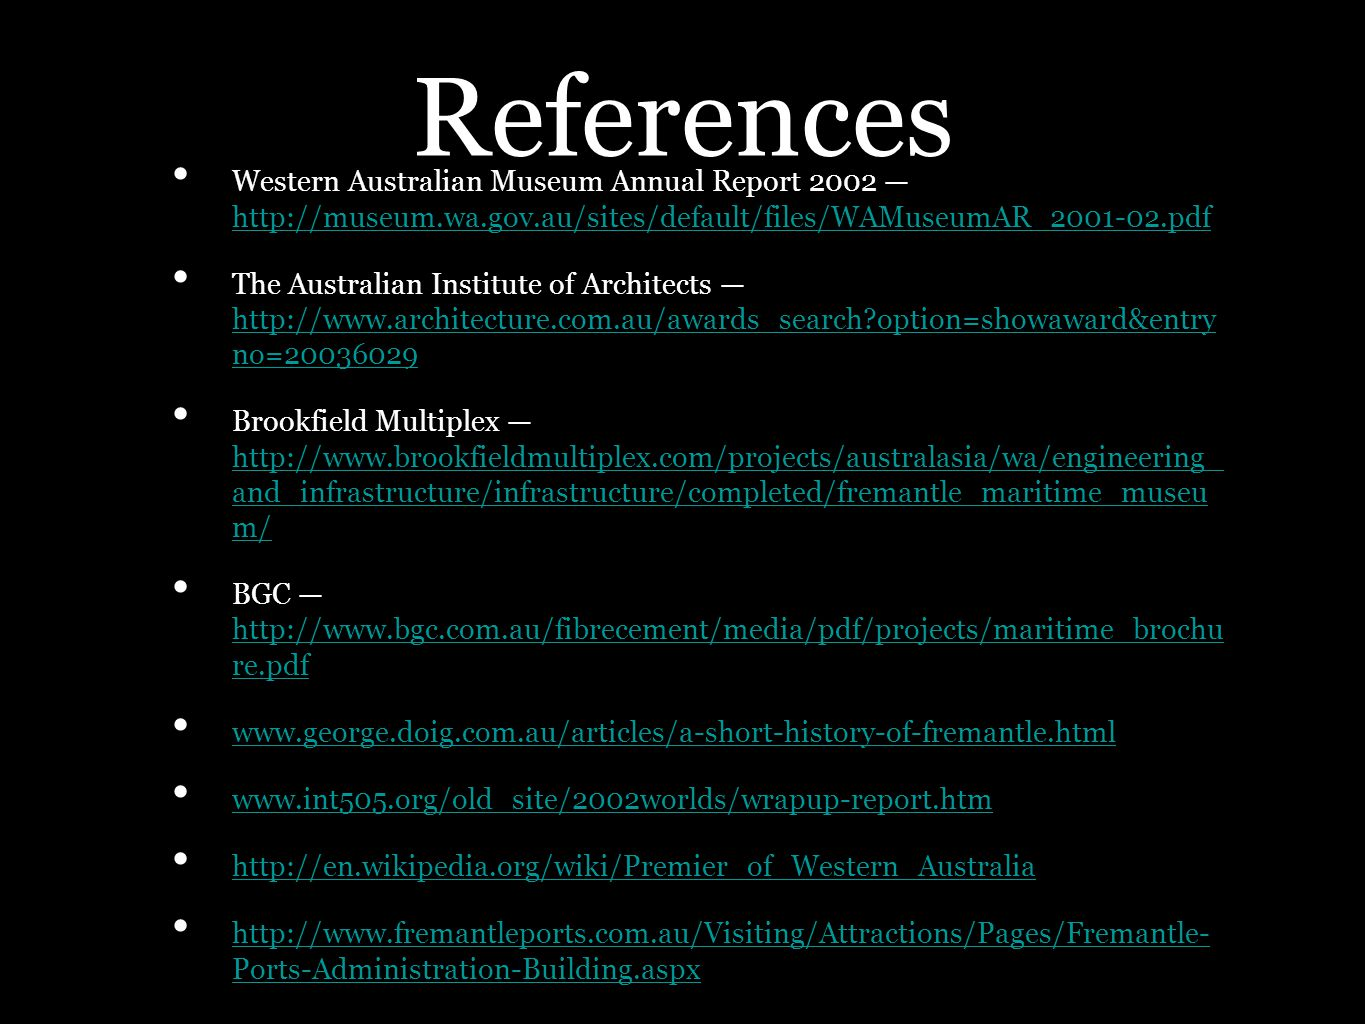 References Western Australian Museum Annual Report 2002 http://museum.wa.gov.au/sites/default/files/WAMuseumAR_2001-02.pdf http://museum.wa.gov.au/sites/default/files/WAMuseumAR_2001-02.pdf The Australian Institute of Architects http://www.architecture.com.au/awards_search option=showaward&entry no=20036029 http://www.architecture.com.au/awards_search option=showaward&entry no=20036029 Brookfield Multiplex http://www.brookfieldmultiplex.com/projects/australasia/wa/engineering_ and_infrastructure/infrastructure/completed/fremantle_maritime_museu m/ http://www.brookfieldmultiplex.com/projects/australasia/wa/engineering_ and_infrastructure/infrastructure/completed/fremantle_maritime_museu m/ BGC http://www.bgc.com.au/fibrecement/media/pdf/projects/maritime_brochu re.pdf http://www.bgc.com.au/fibrecement/media/pdf/projects/maritime_brochu re.pdf www.george.doig.com.au/articles/a-short-history-of-fremantle.html www.int505.org/old_site/2002worlds/wrapup-report.htm http://en.wikipedia.org/wiki/Premier_of_Western_Australia http://www.fremantleports.com.au/Visiting/Attractions/Pages/Fremantle- Ports-Administration-Building.aspx http://www.fremantleports.com.au/Visiting/Attractions/Pages/Fremantle- Ports-Administration-Building.aspx